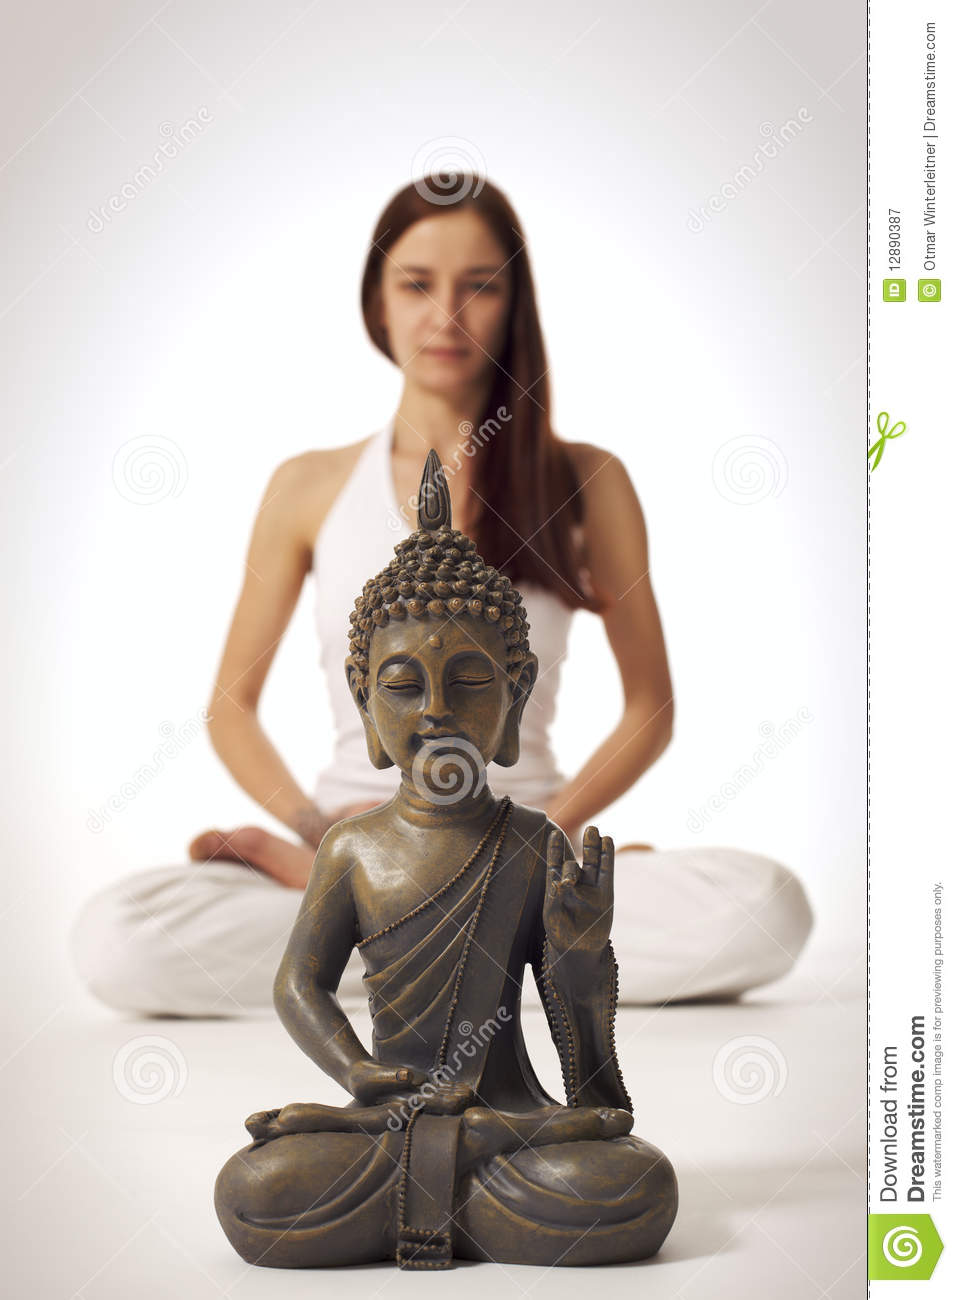 gerlaw buddhist single women Browse photo profiles & contact who are buddhist, religion on australia's #1  dating site rsvp free to browse & join.